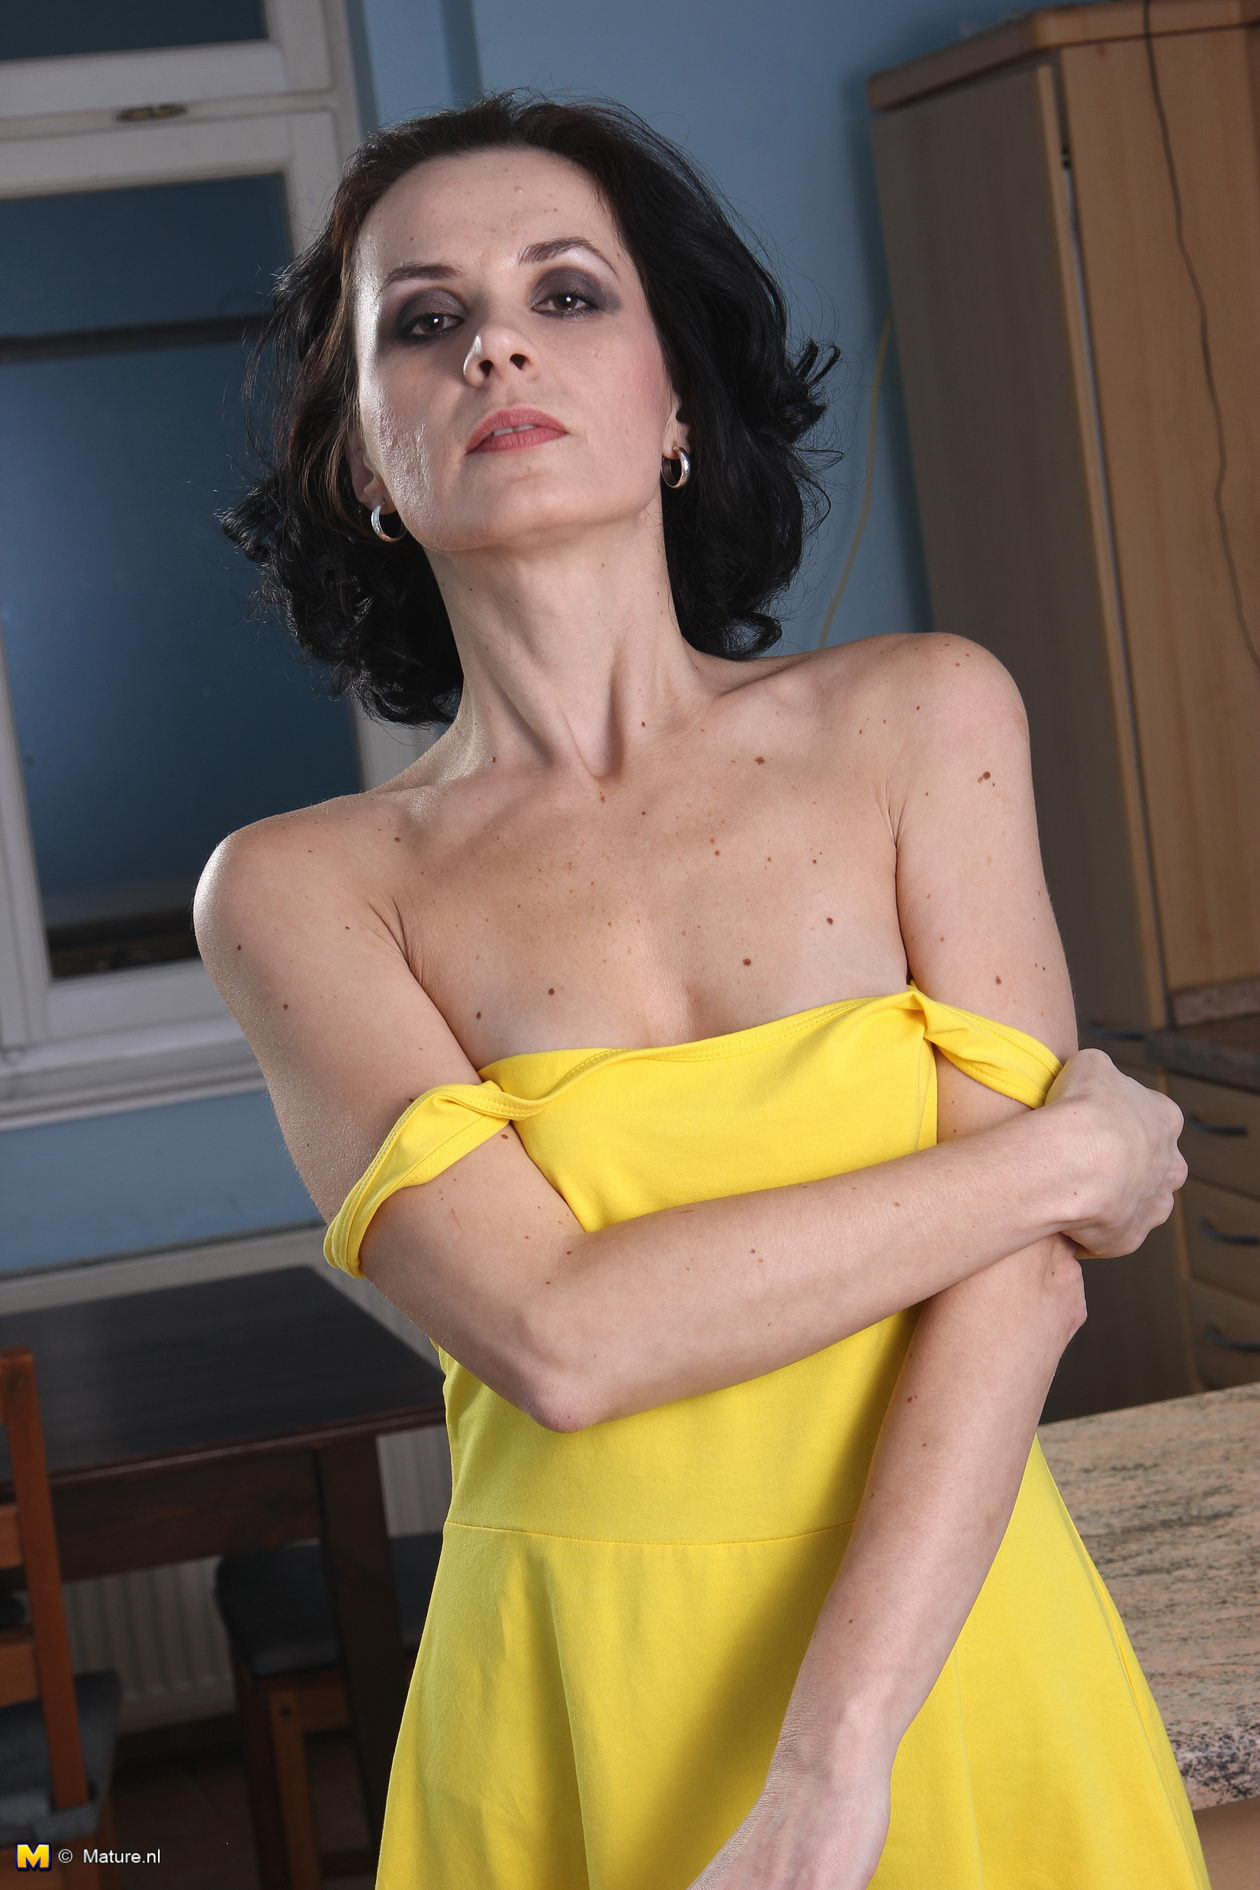 Mature NL - The hottest mature site on the net. With loads of weekly ...